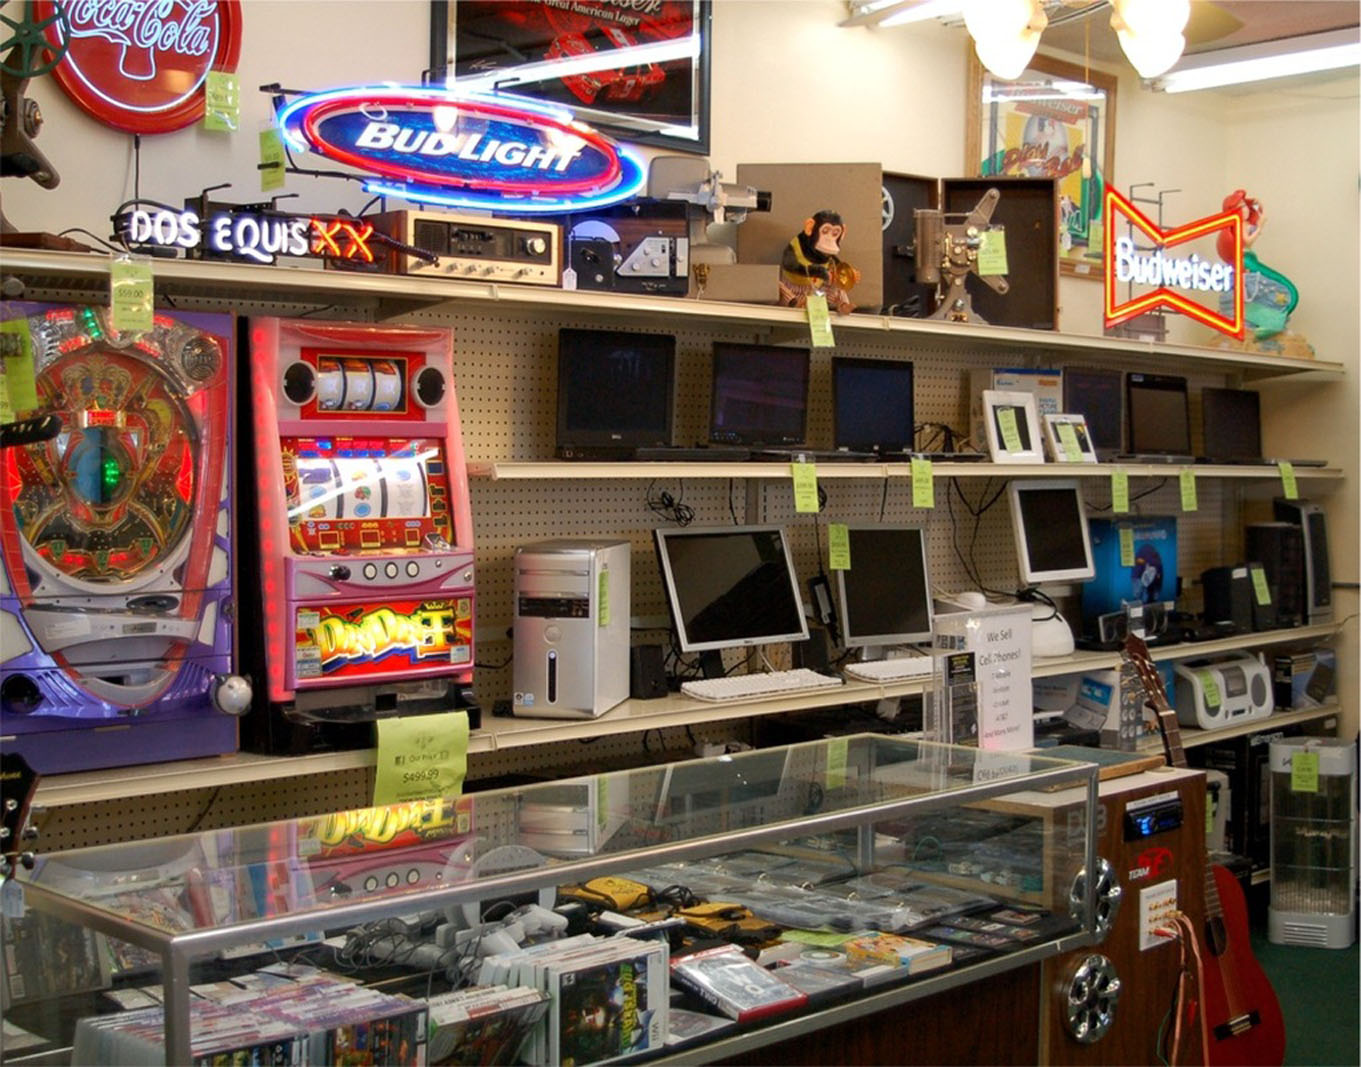 Where to apply, if money is urgently needed - a pawnshop as a solution to the issue